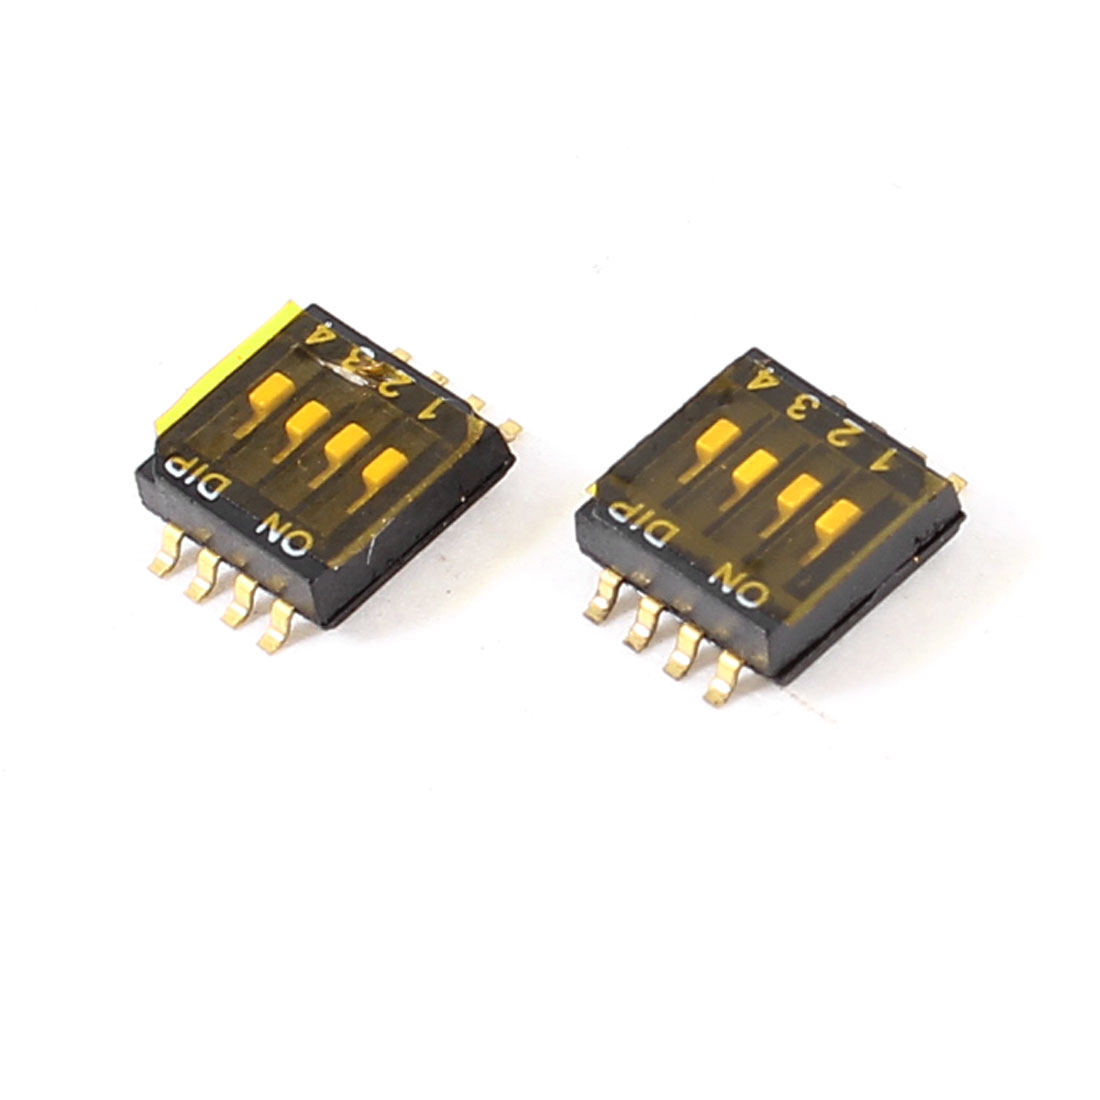 2pcs 8 Pins 4 Positions 1.27mm Half Pitch PCB SMT SMD DIP Switch